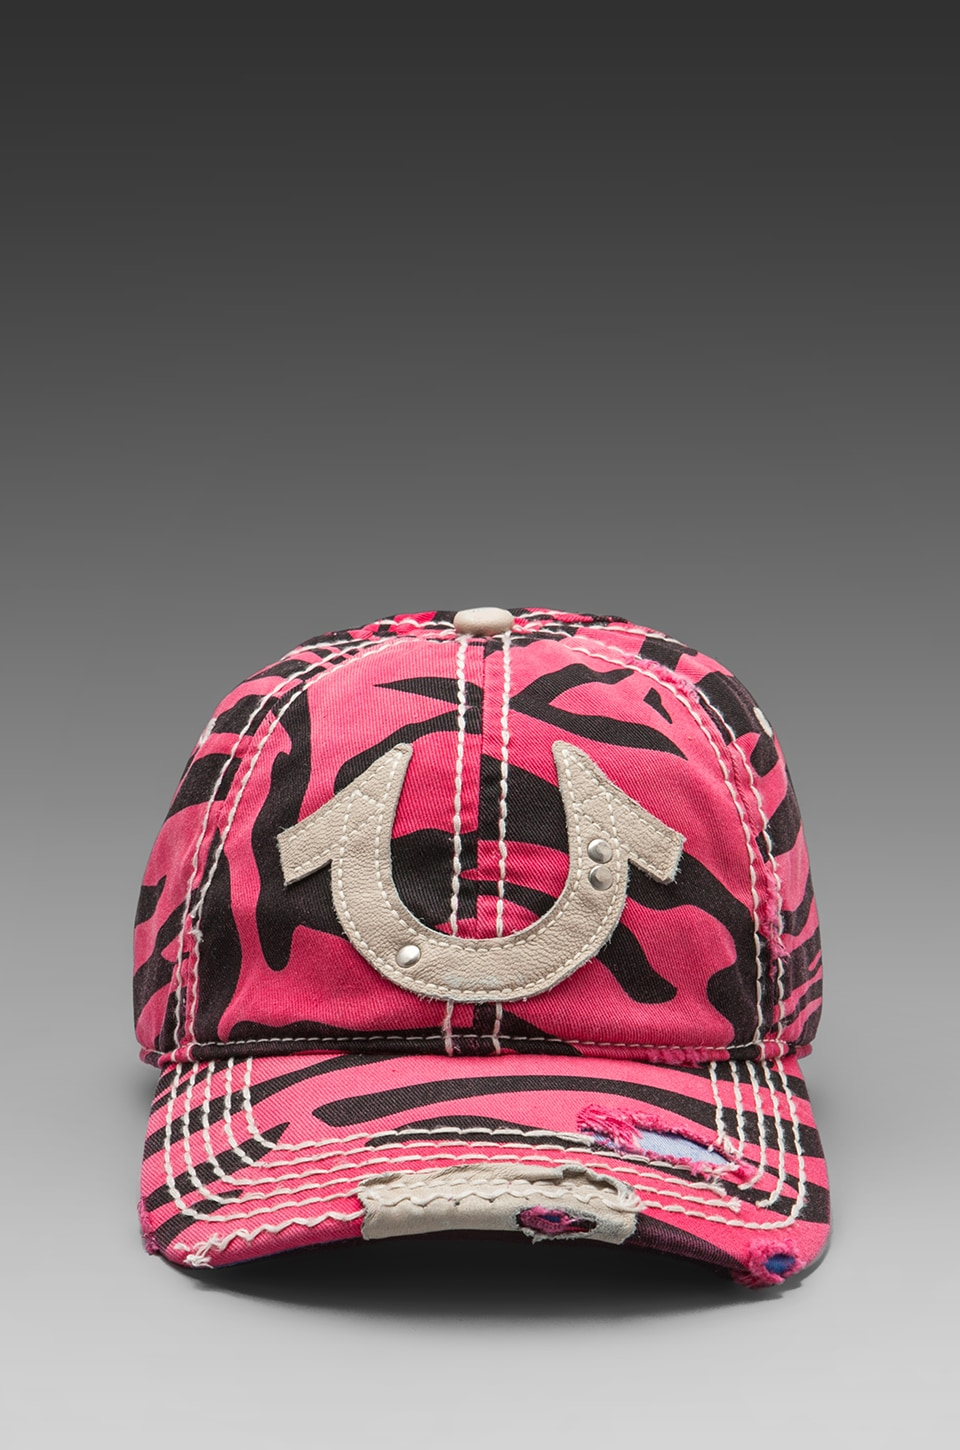 True Religion Zebra Cap in Fuchsia